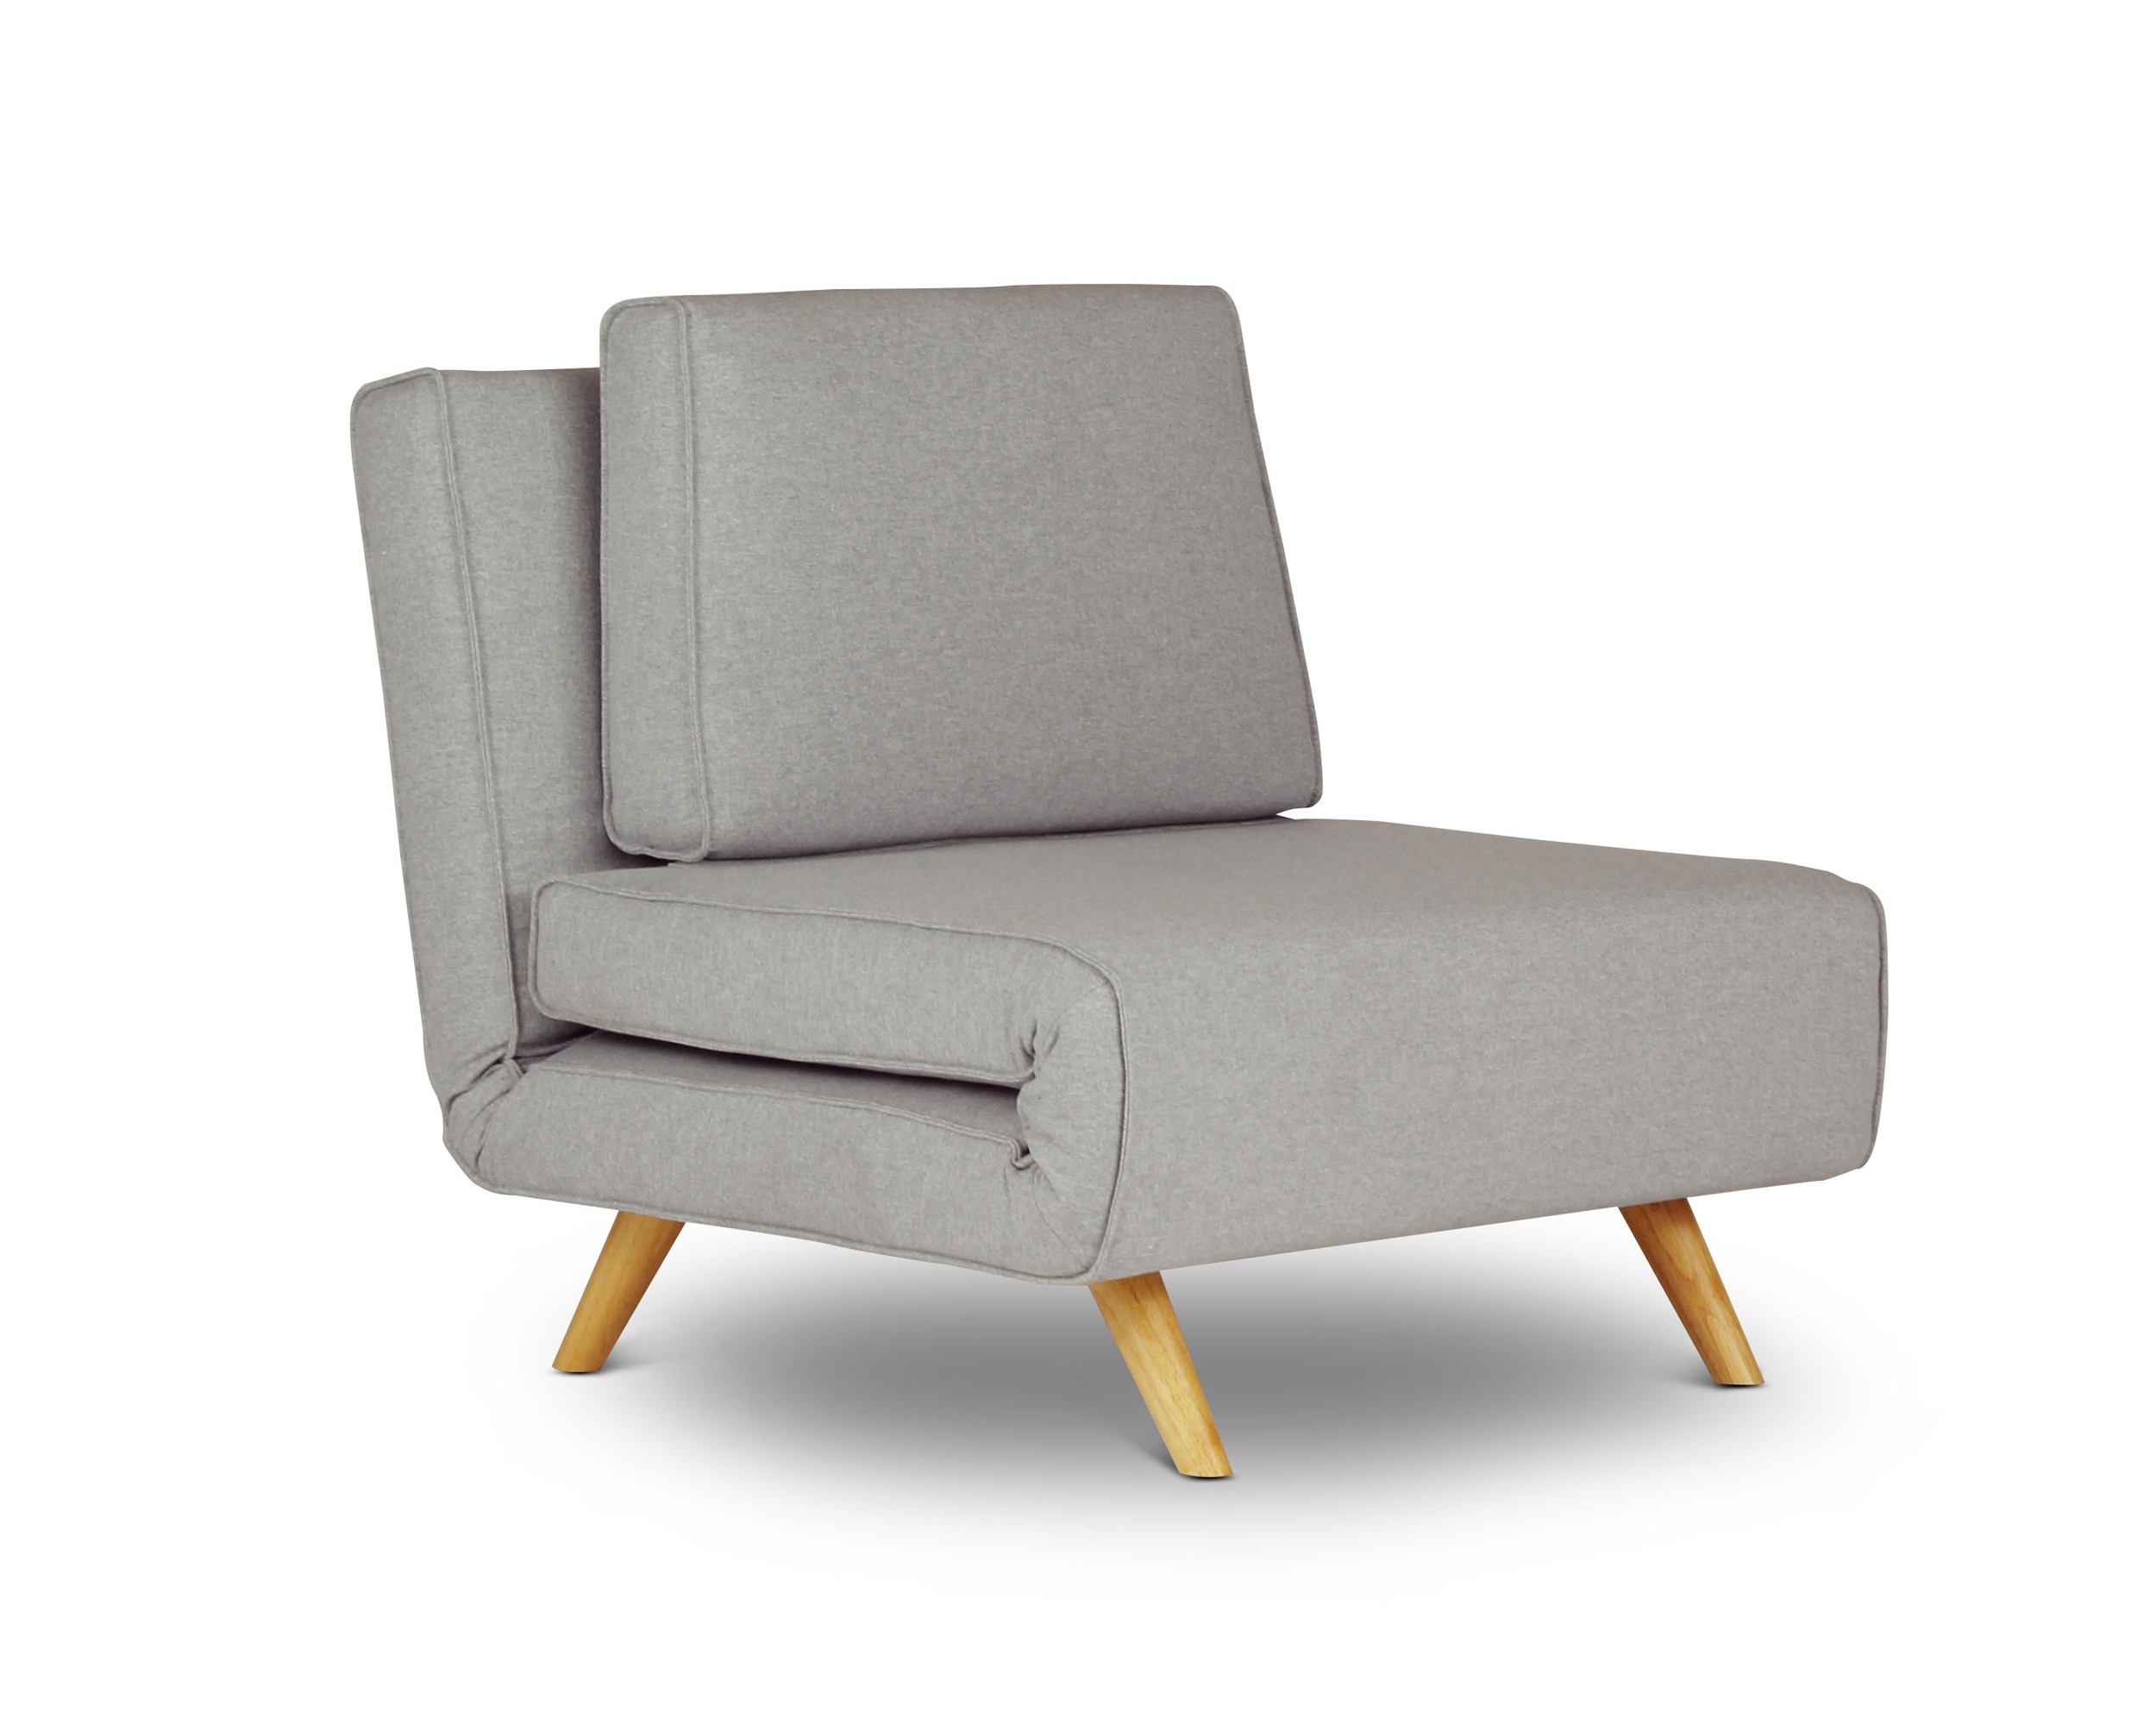 54 Single Sofa Bed Chair About Single Sofa Bed Chair On Pinterest With Single Chair Sofa Bed (Image 2 of 15)